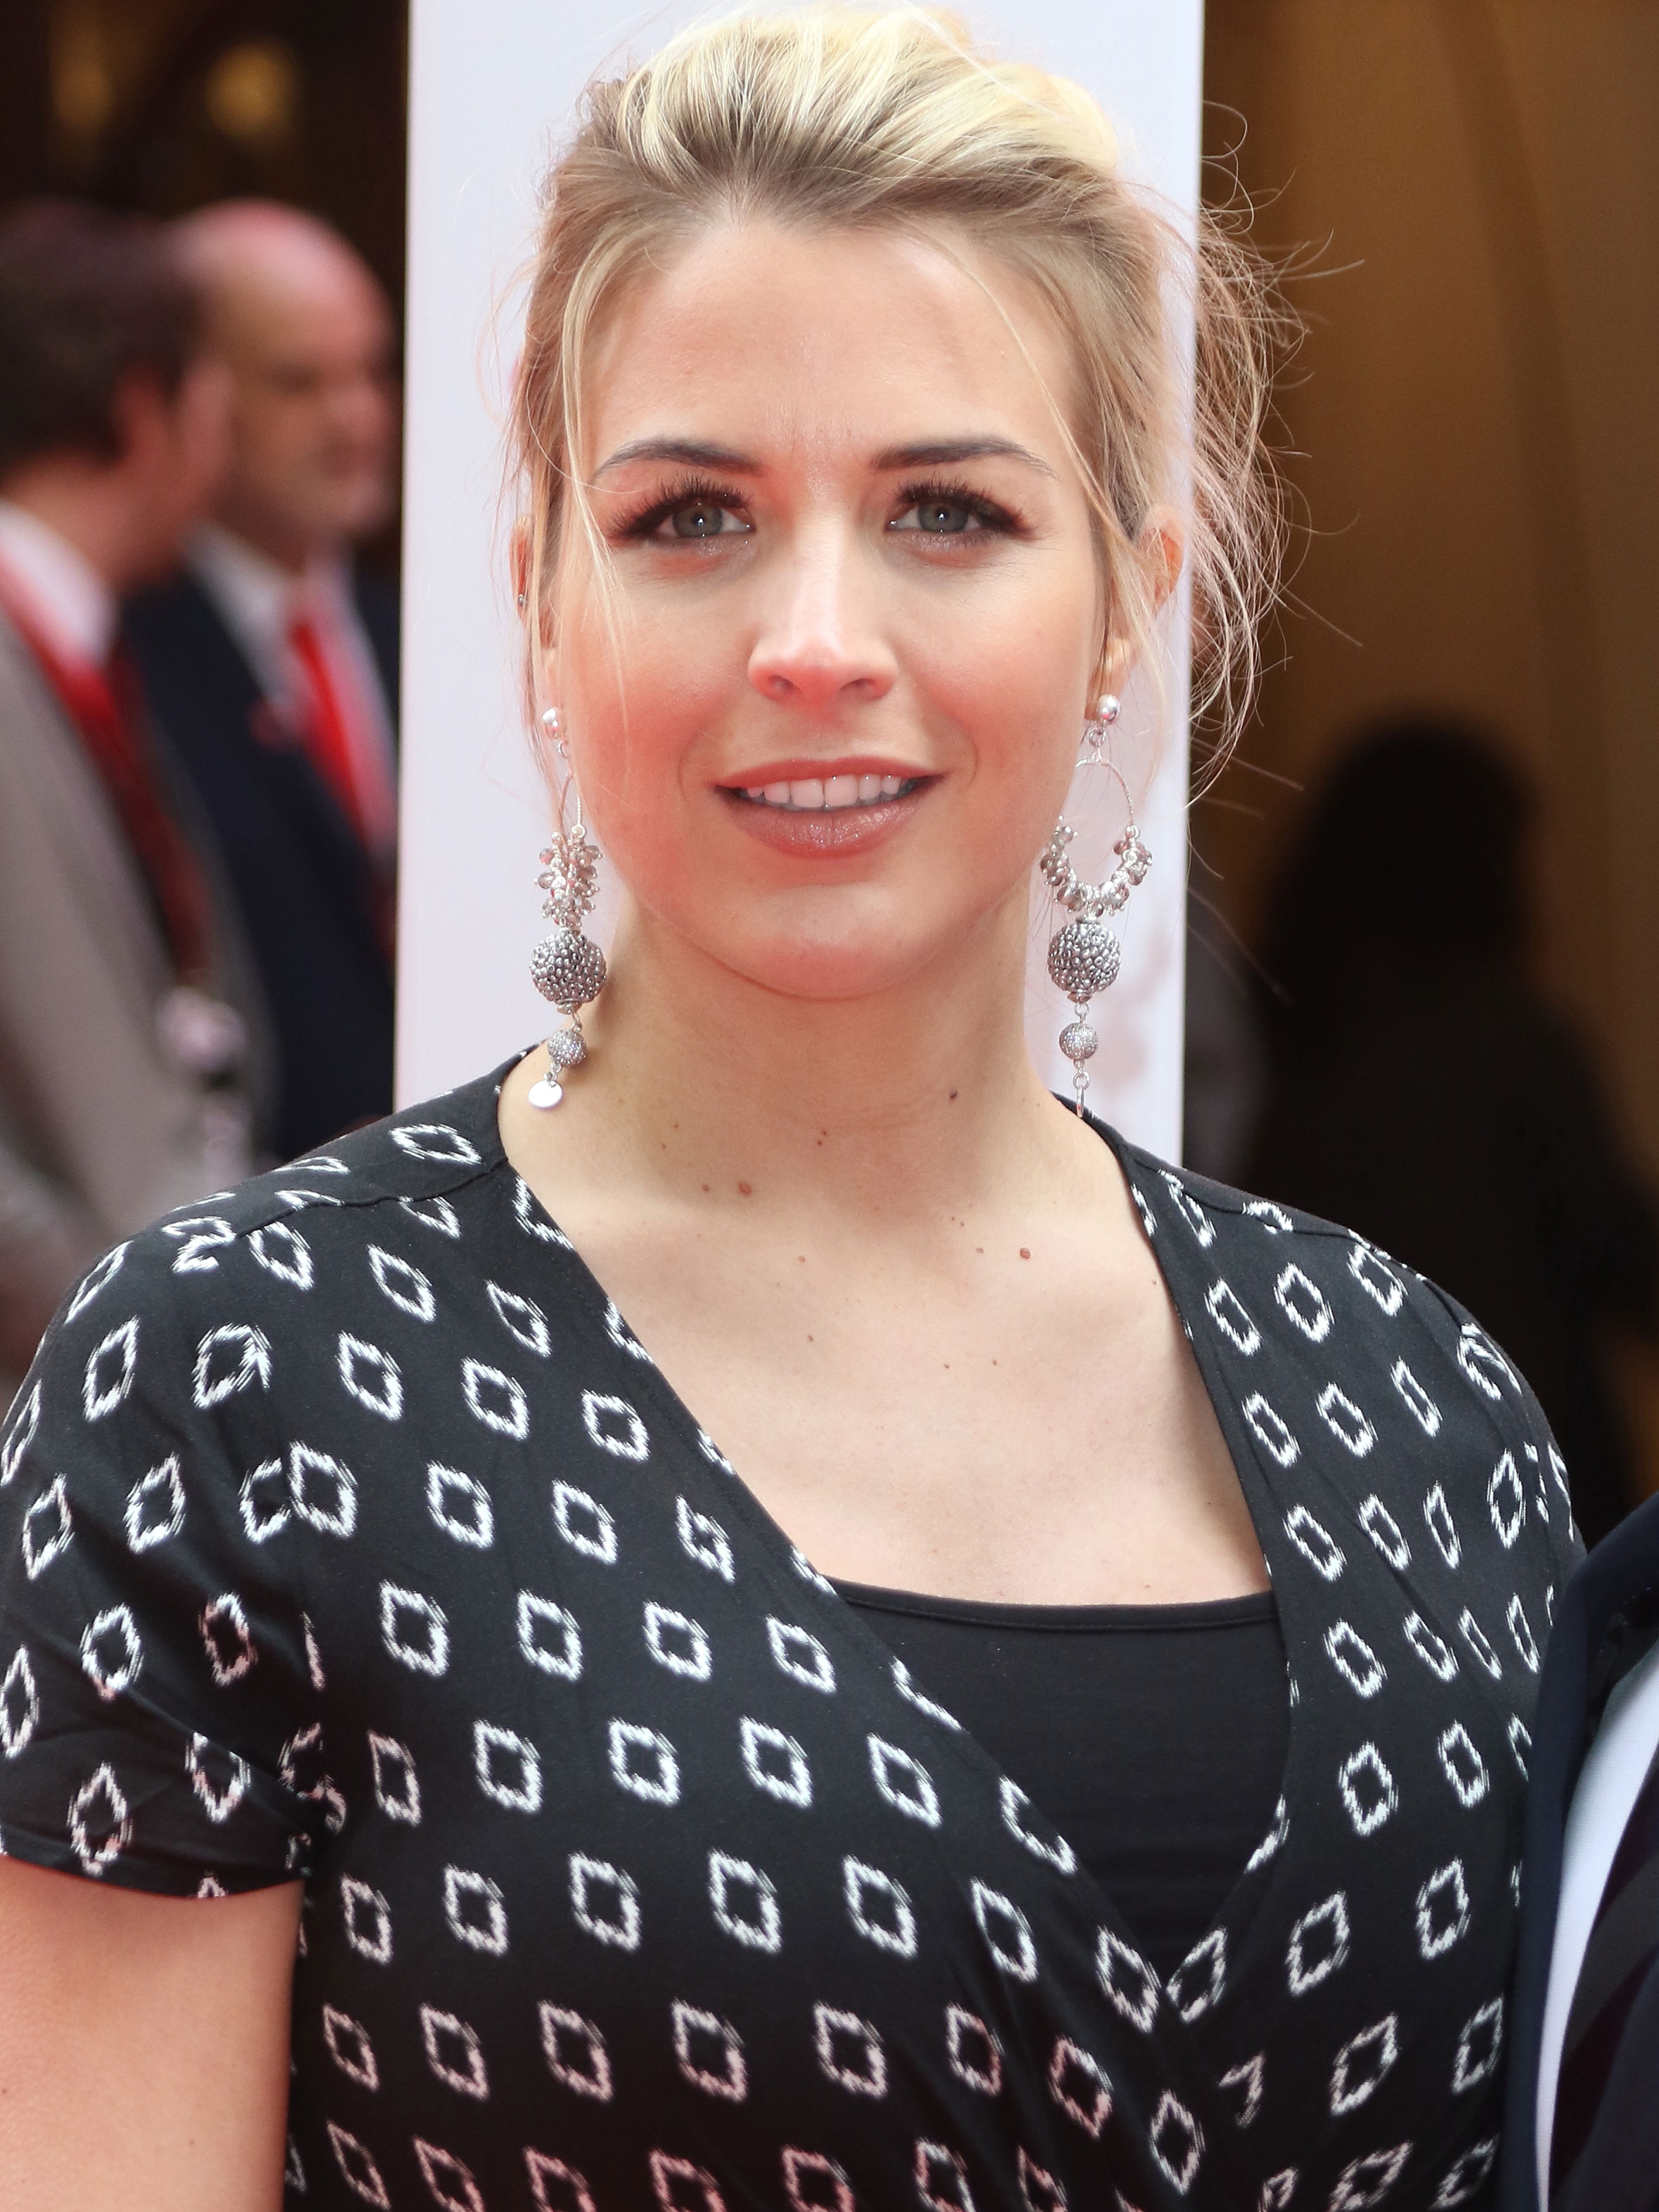 Gemma Atkinson shows off 15kg weight gain as she opens up about her pregnancy body